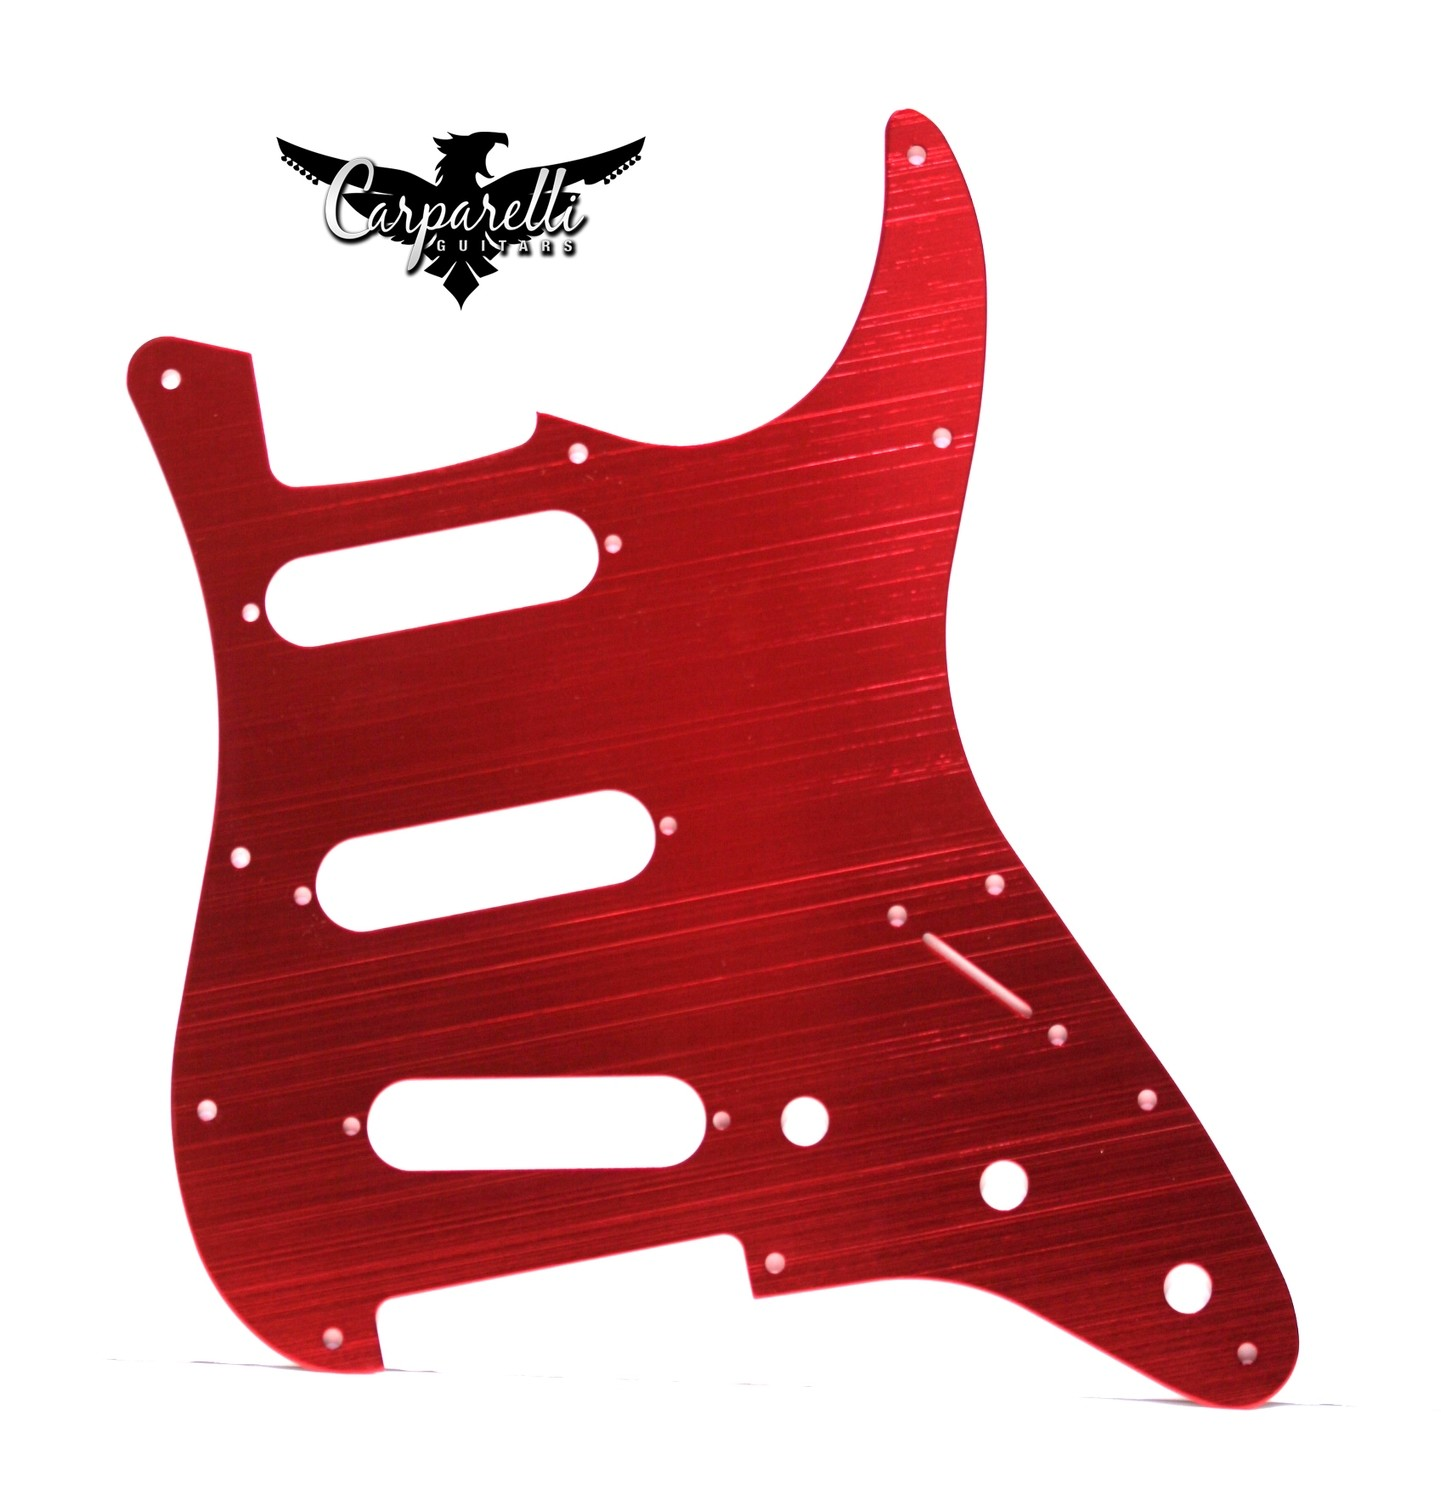 Carparelli Anodized Aluminum Pickguard for SSS Stratocaster® Red